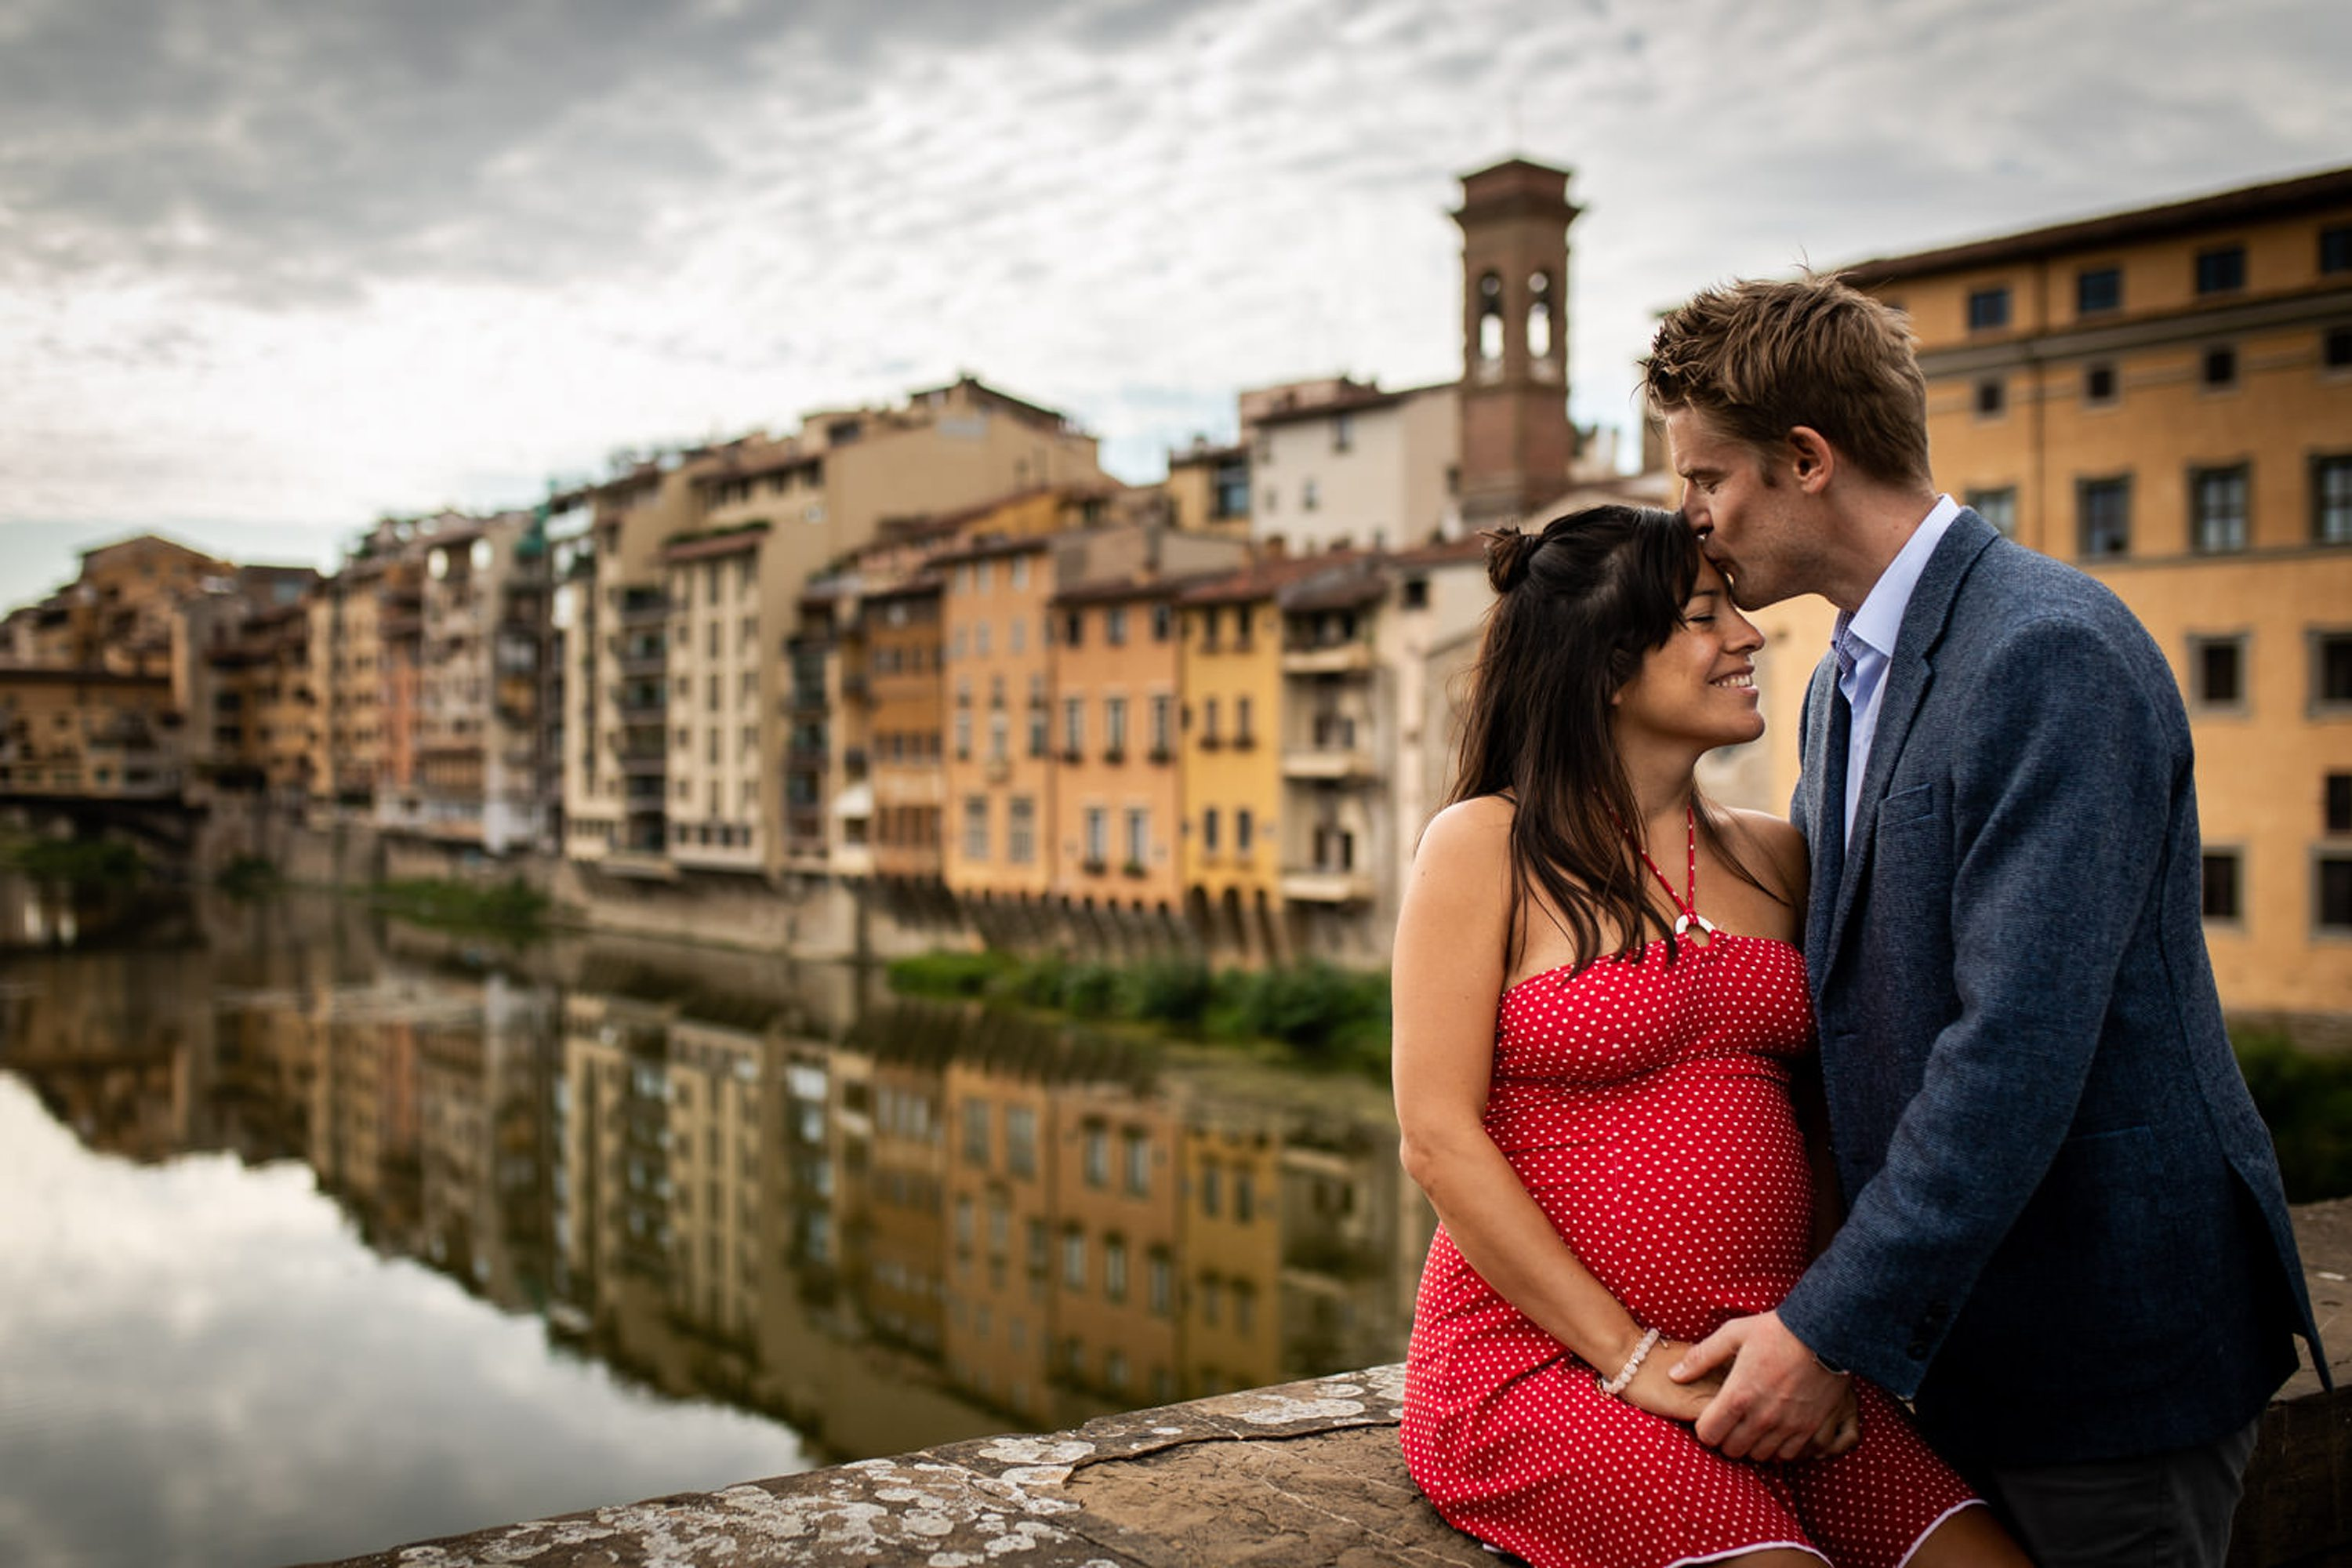 Outdoor maternity photoshoot in Florence,Pregnancy photos in the historic center of Florence